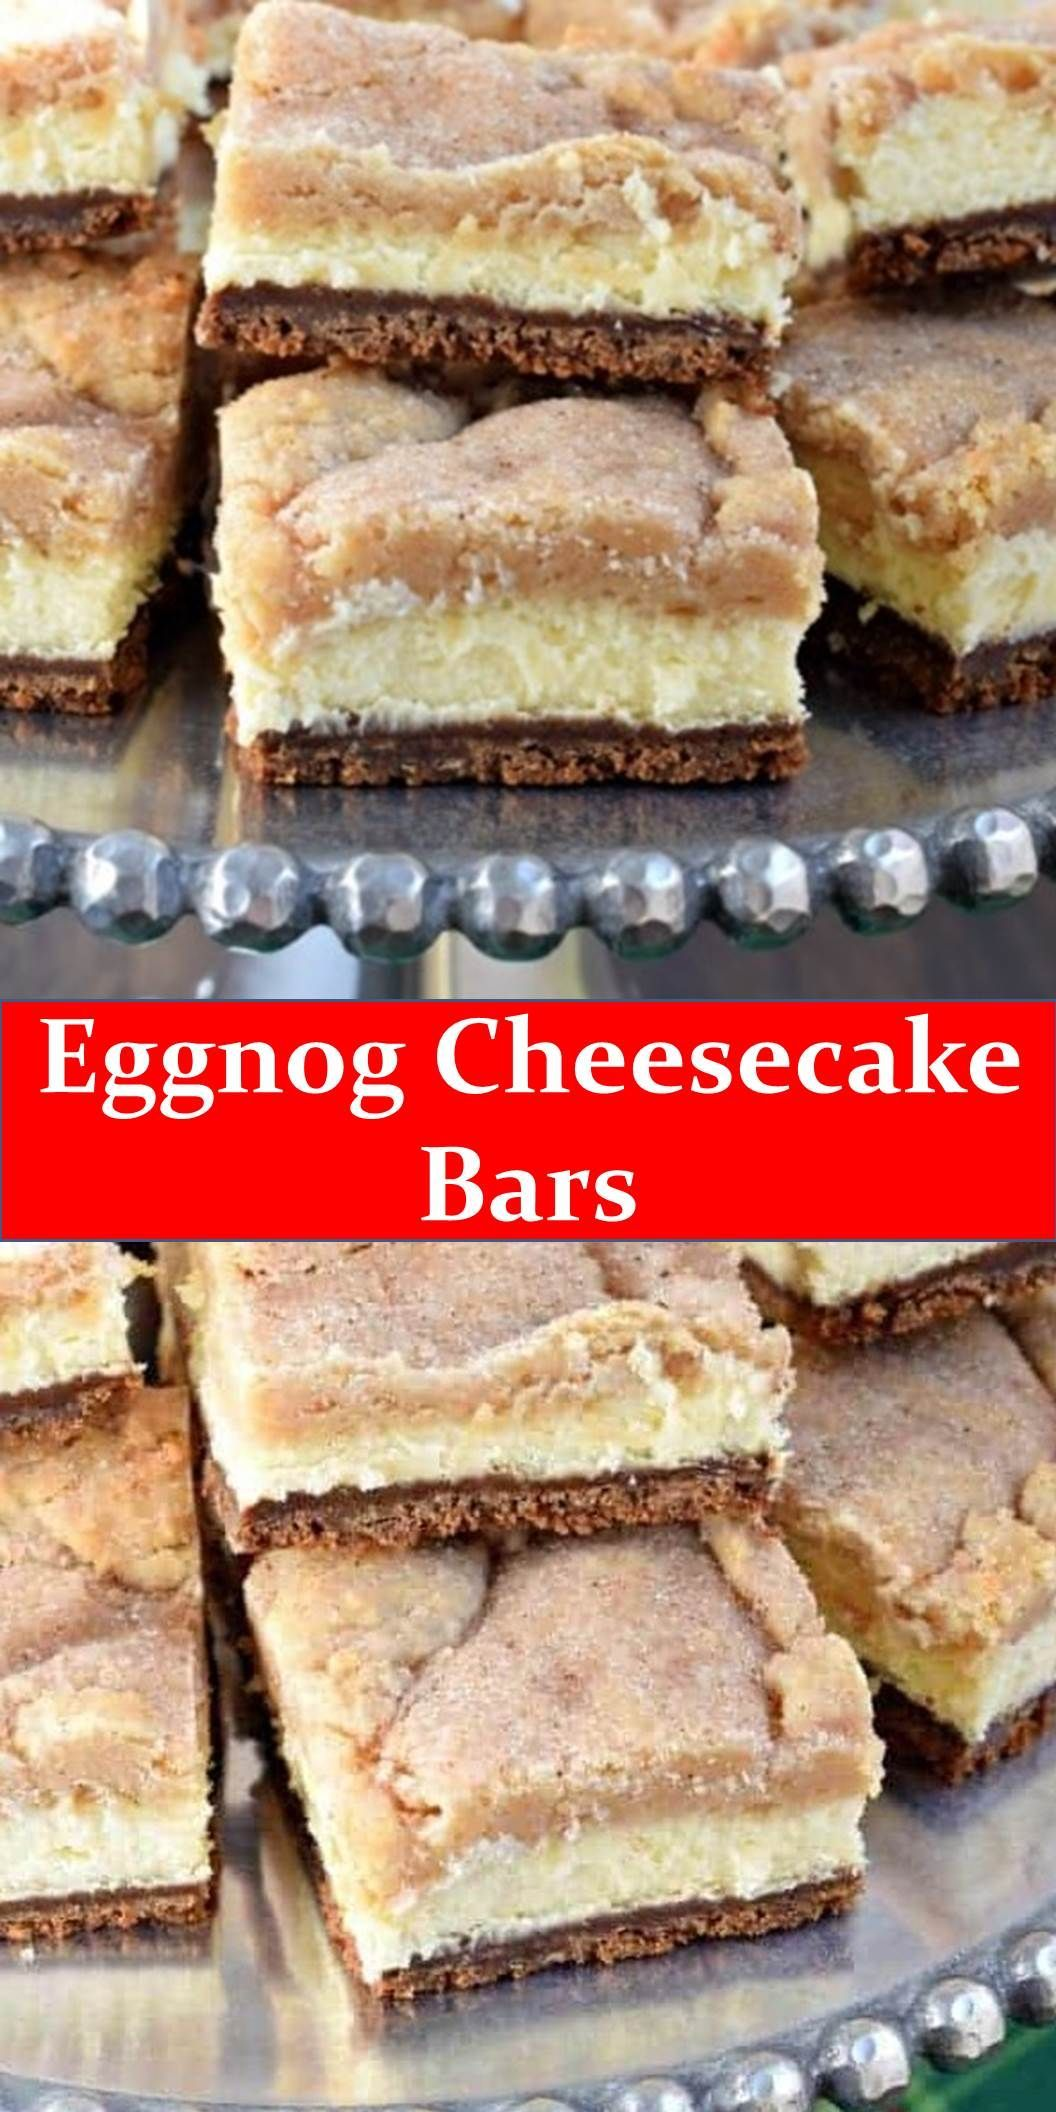 #Dessert #Eggnog #Cheesecake #Bars Your family's favorite food and drink ! Eggnog Cheesecake Bars  Layers of gingersnap crust, creamy eggnog cheesecake filling, and topped with cookie bars, these Eggnog Cheesecake Bars are a holiday must.  #Best #Vegas #Recipe! #BestVegasRecipe! #eggnogcheesecake #Dessert #Eggnog #Cheesecake #Bars Your family's favorite food and drink ! Eggnog Cheesecake Bars  Layers of gingersnap crust, creamy eggnog cheesecake filling, and topped with cookie bars, these Eggnog #eggnogcheesecake